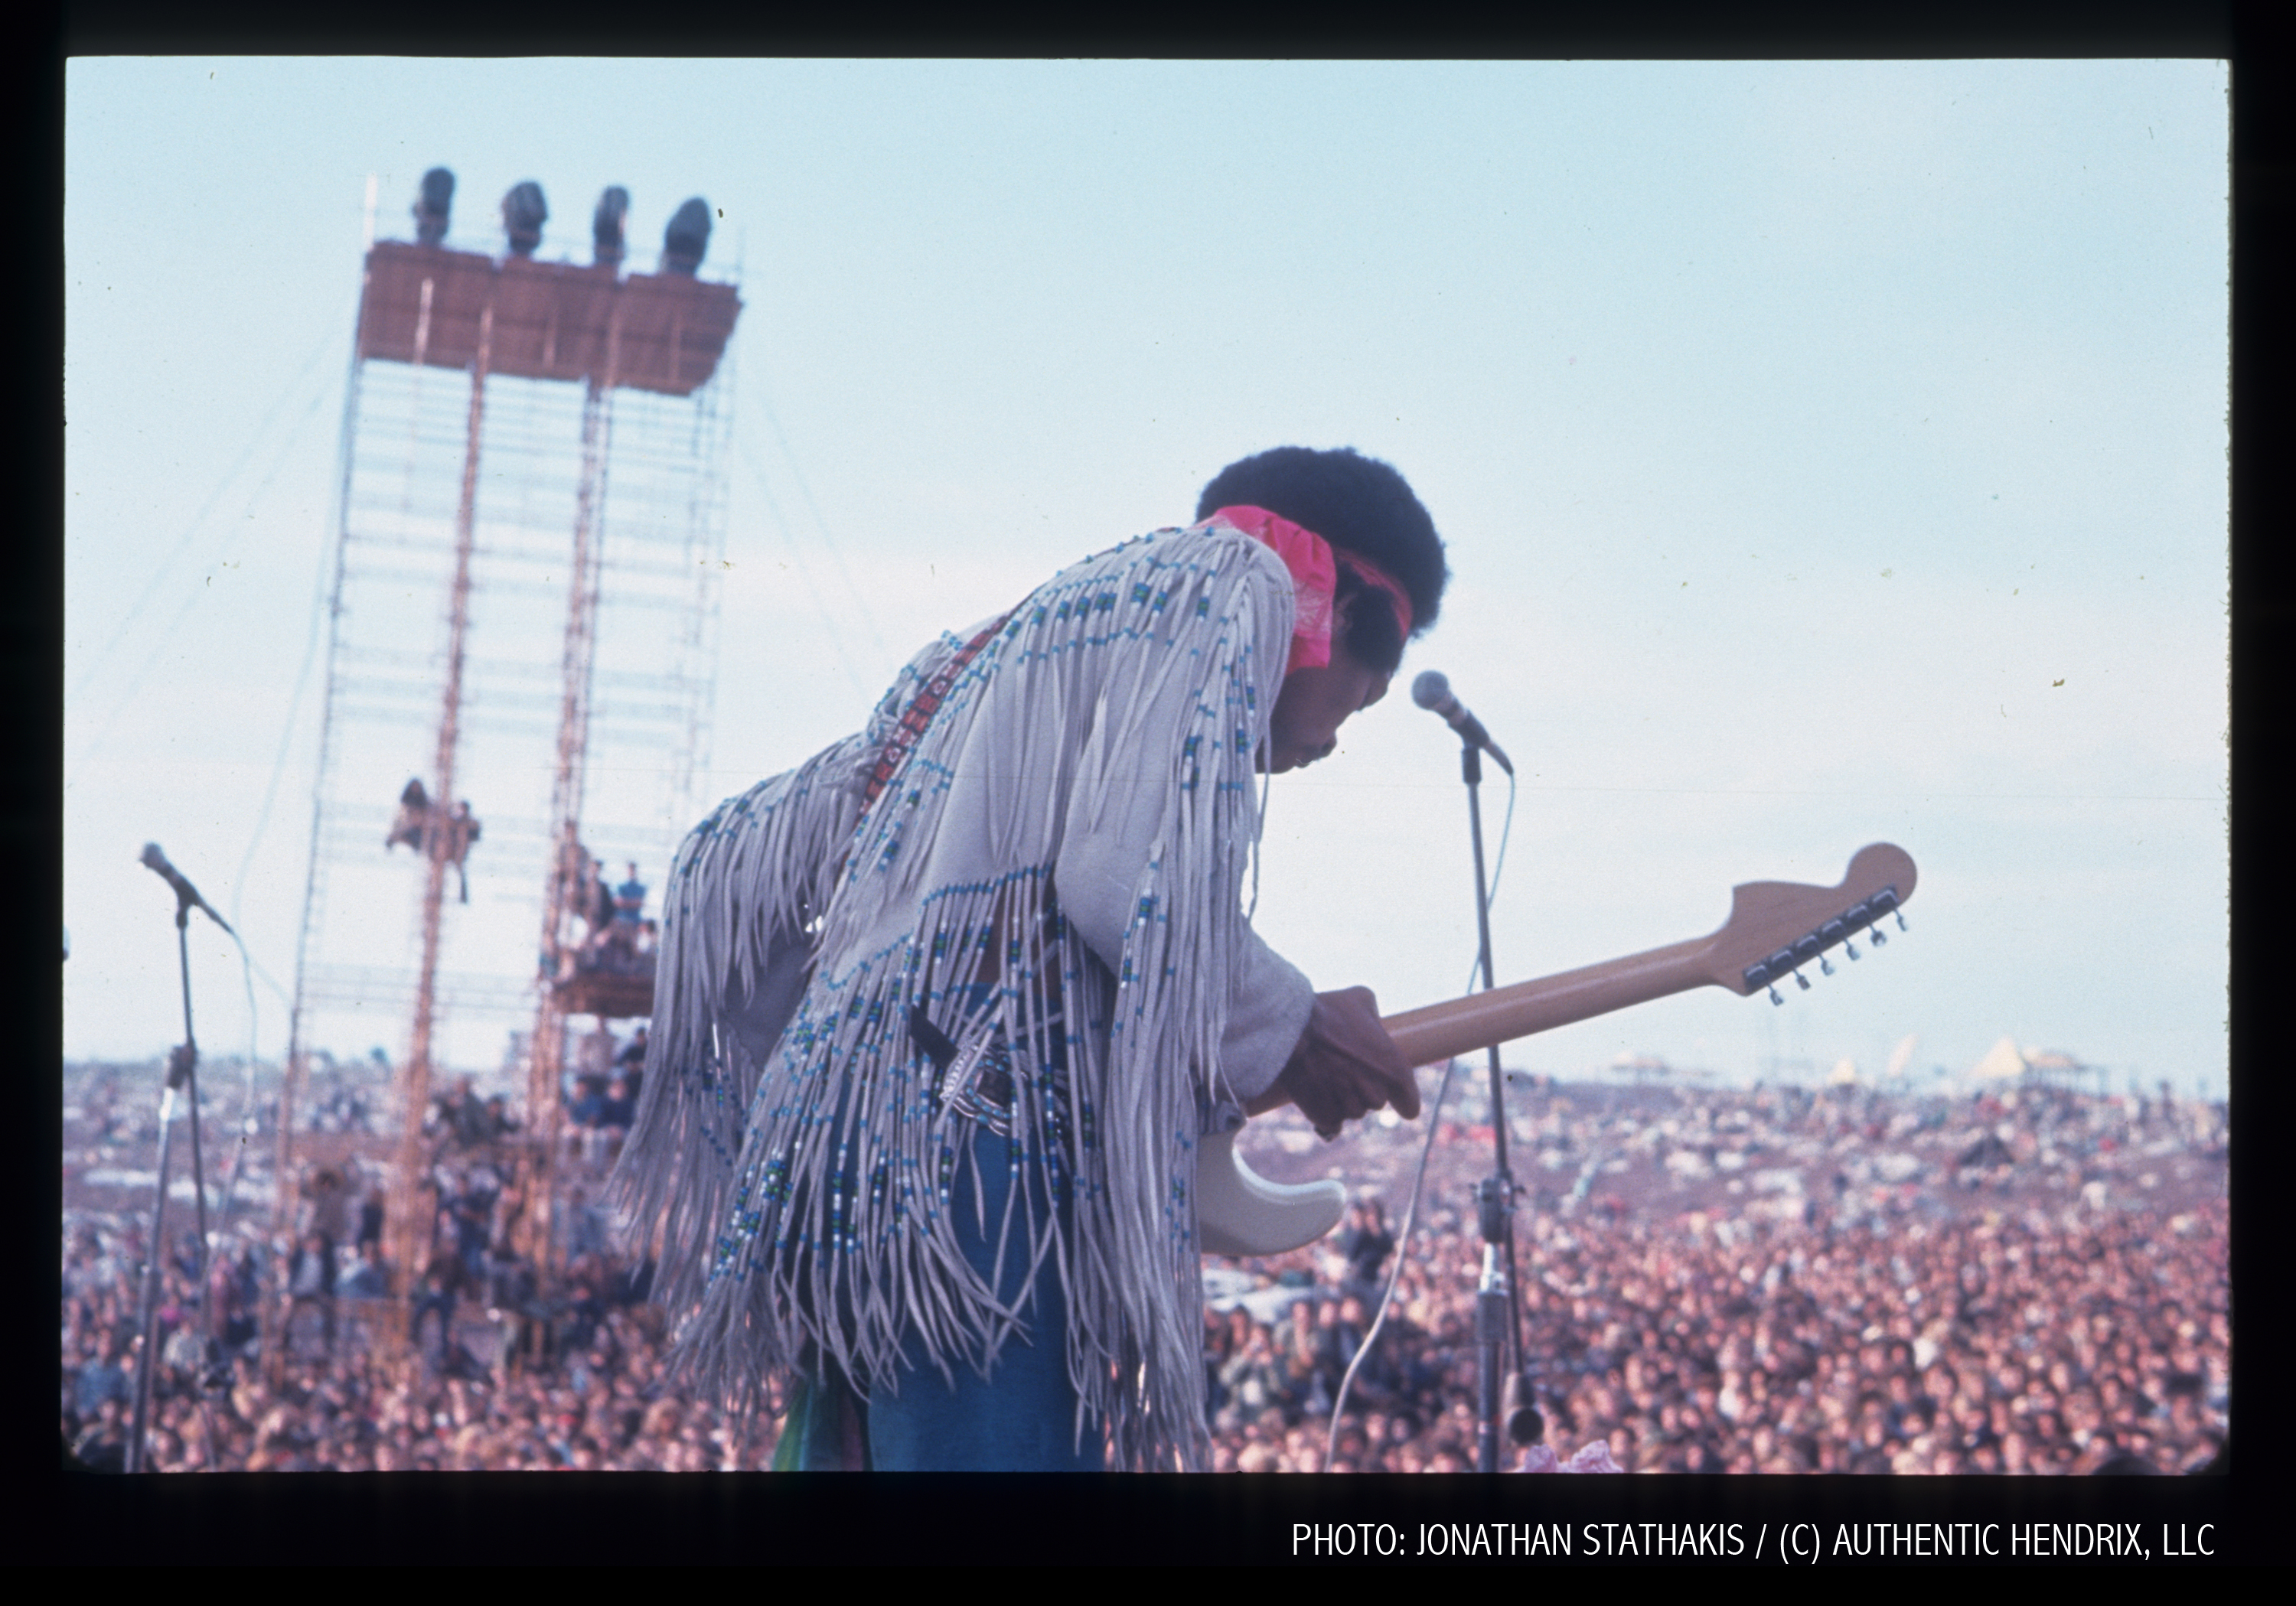 Hendrix 70. Live at Woodstock